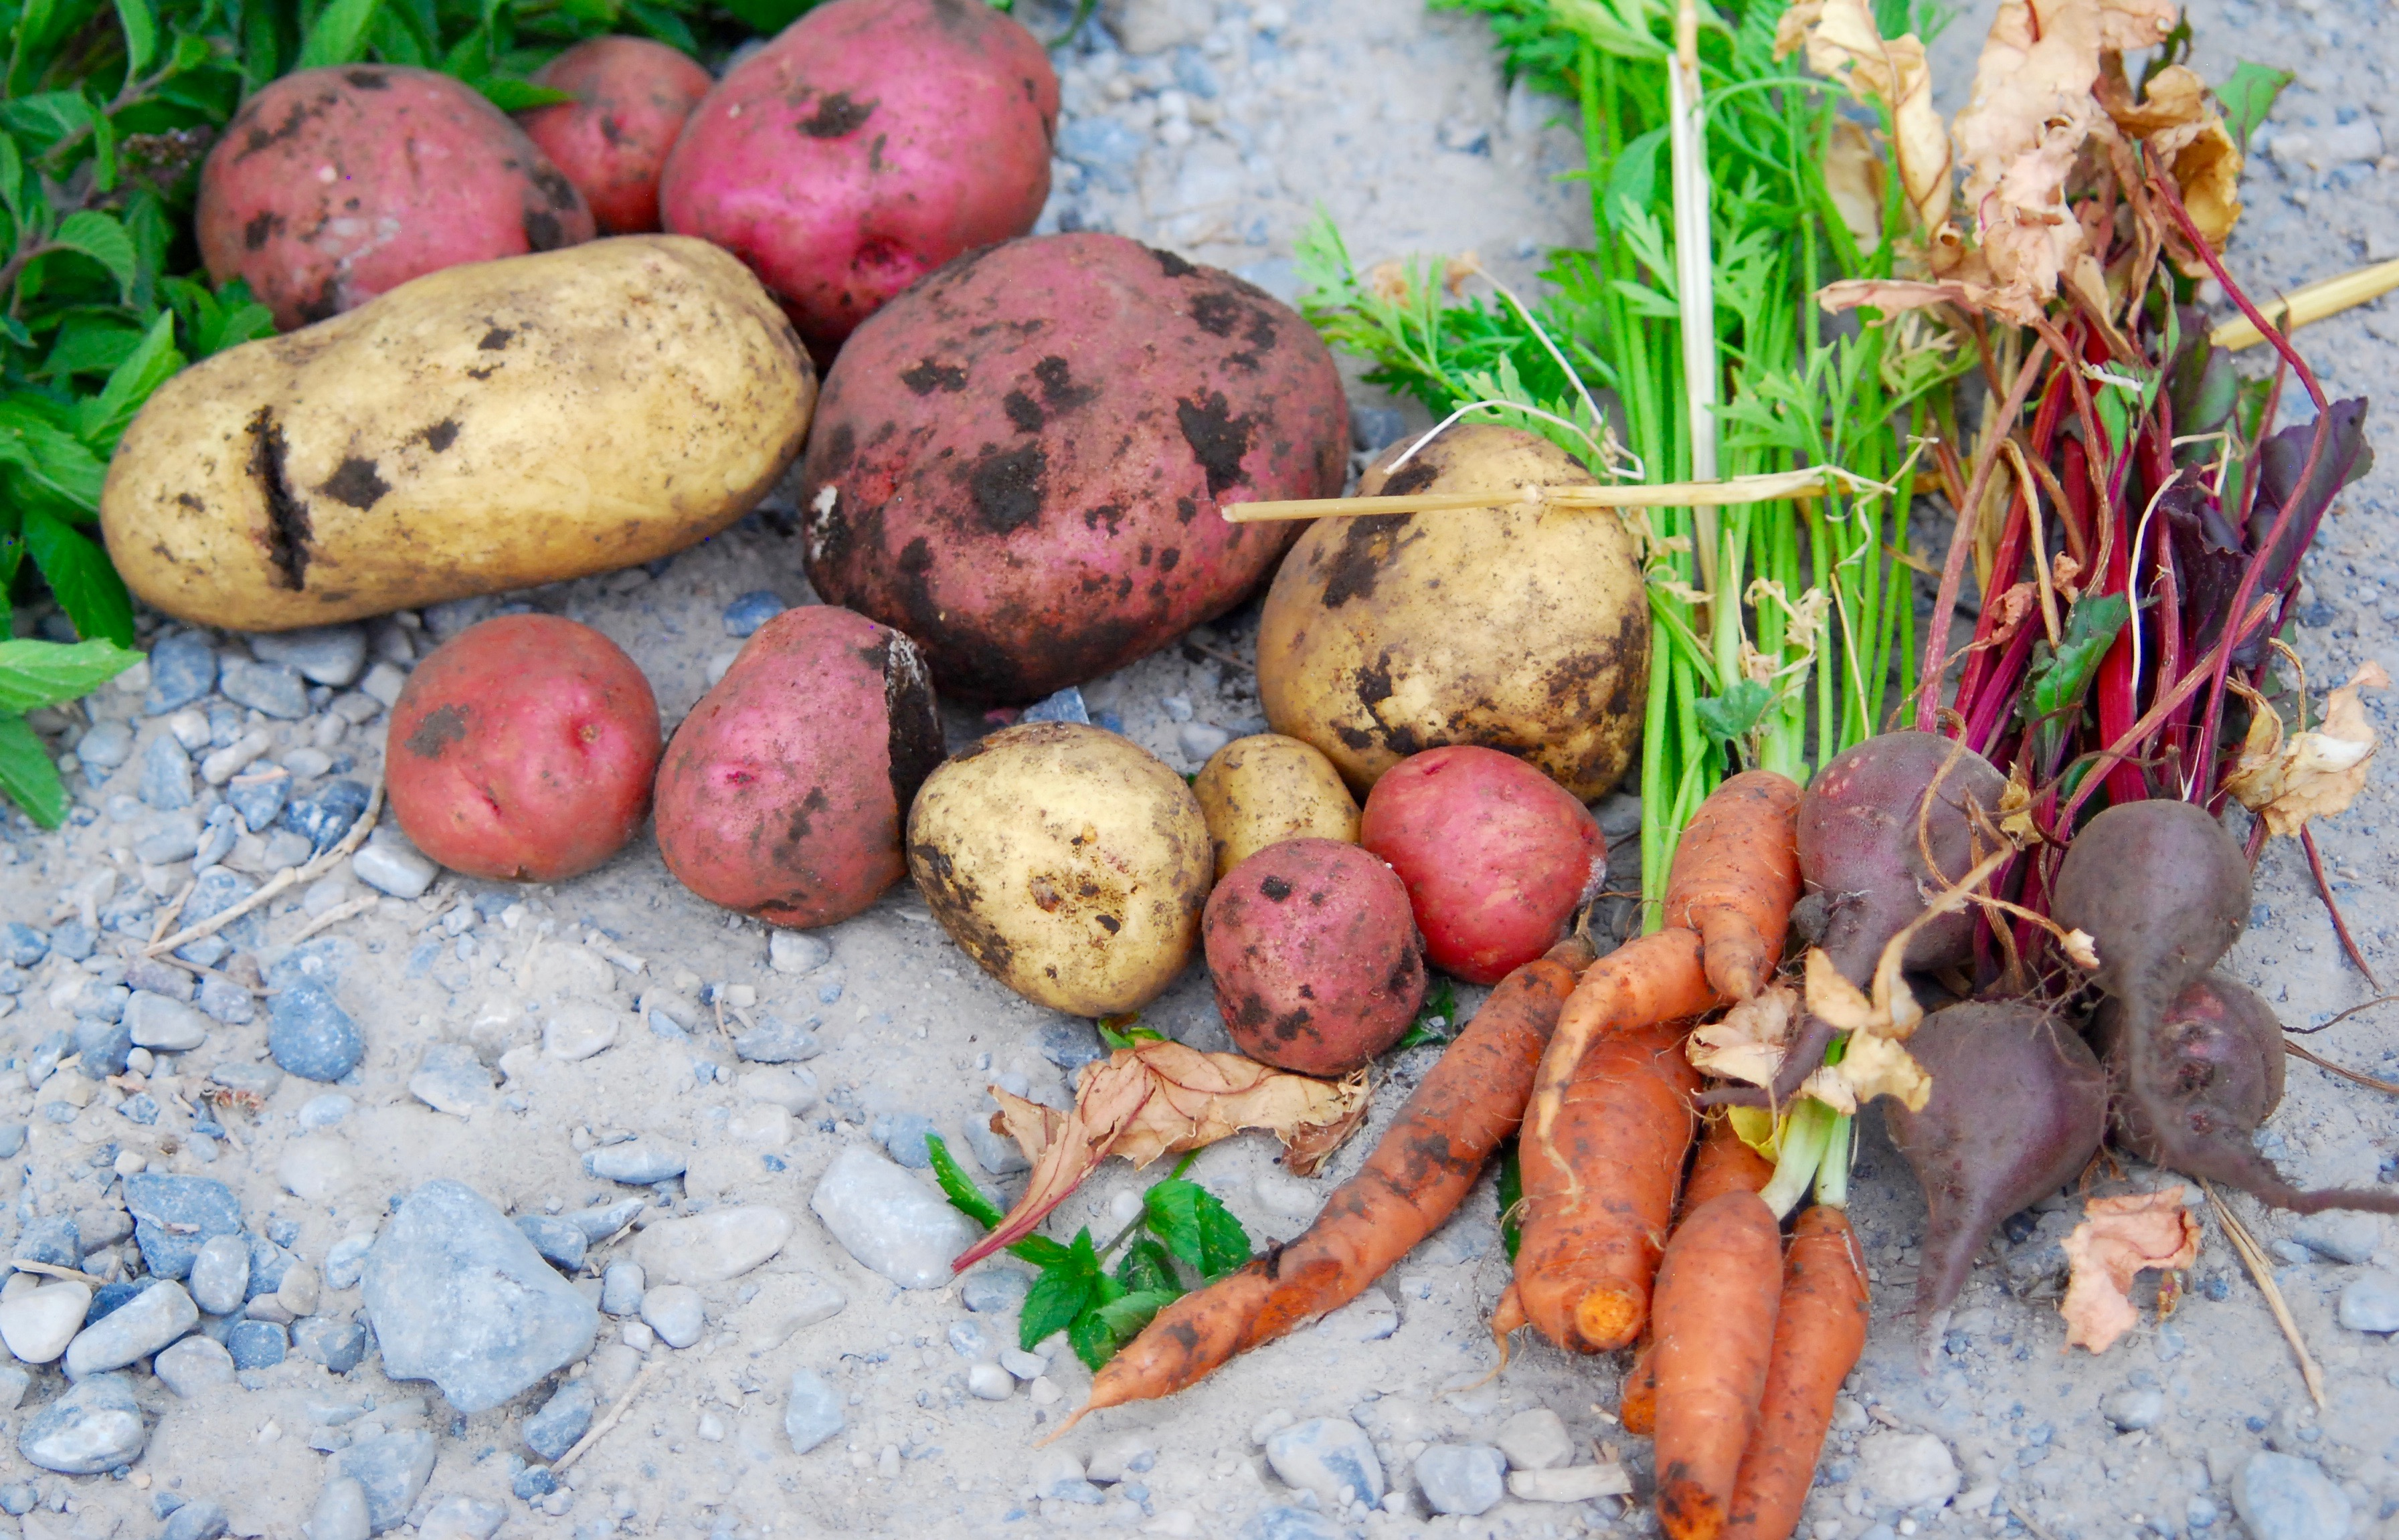 Potatoes, carrots, and beets from the garden 2016